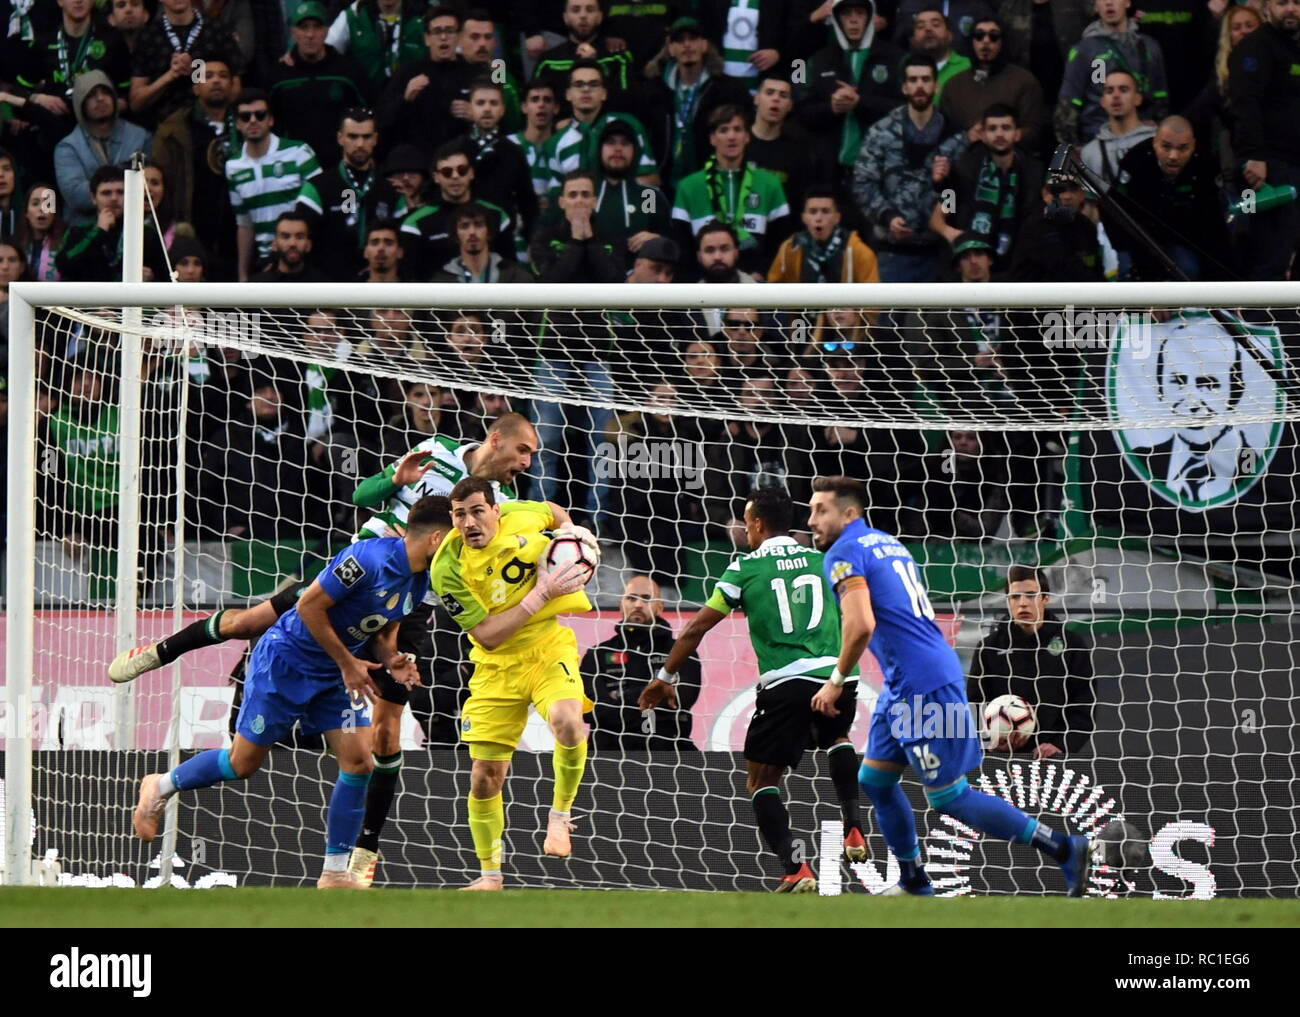 Fc Porto Goalkeeper Stock Photos   Fc Porto Goalkeeper Stock Images ... 001f1cd1f